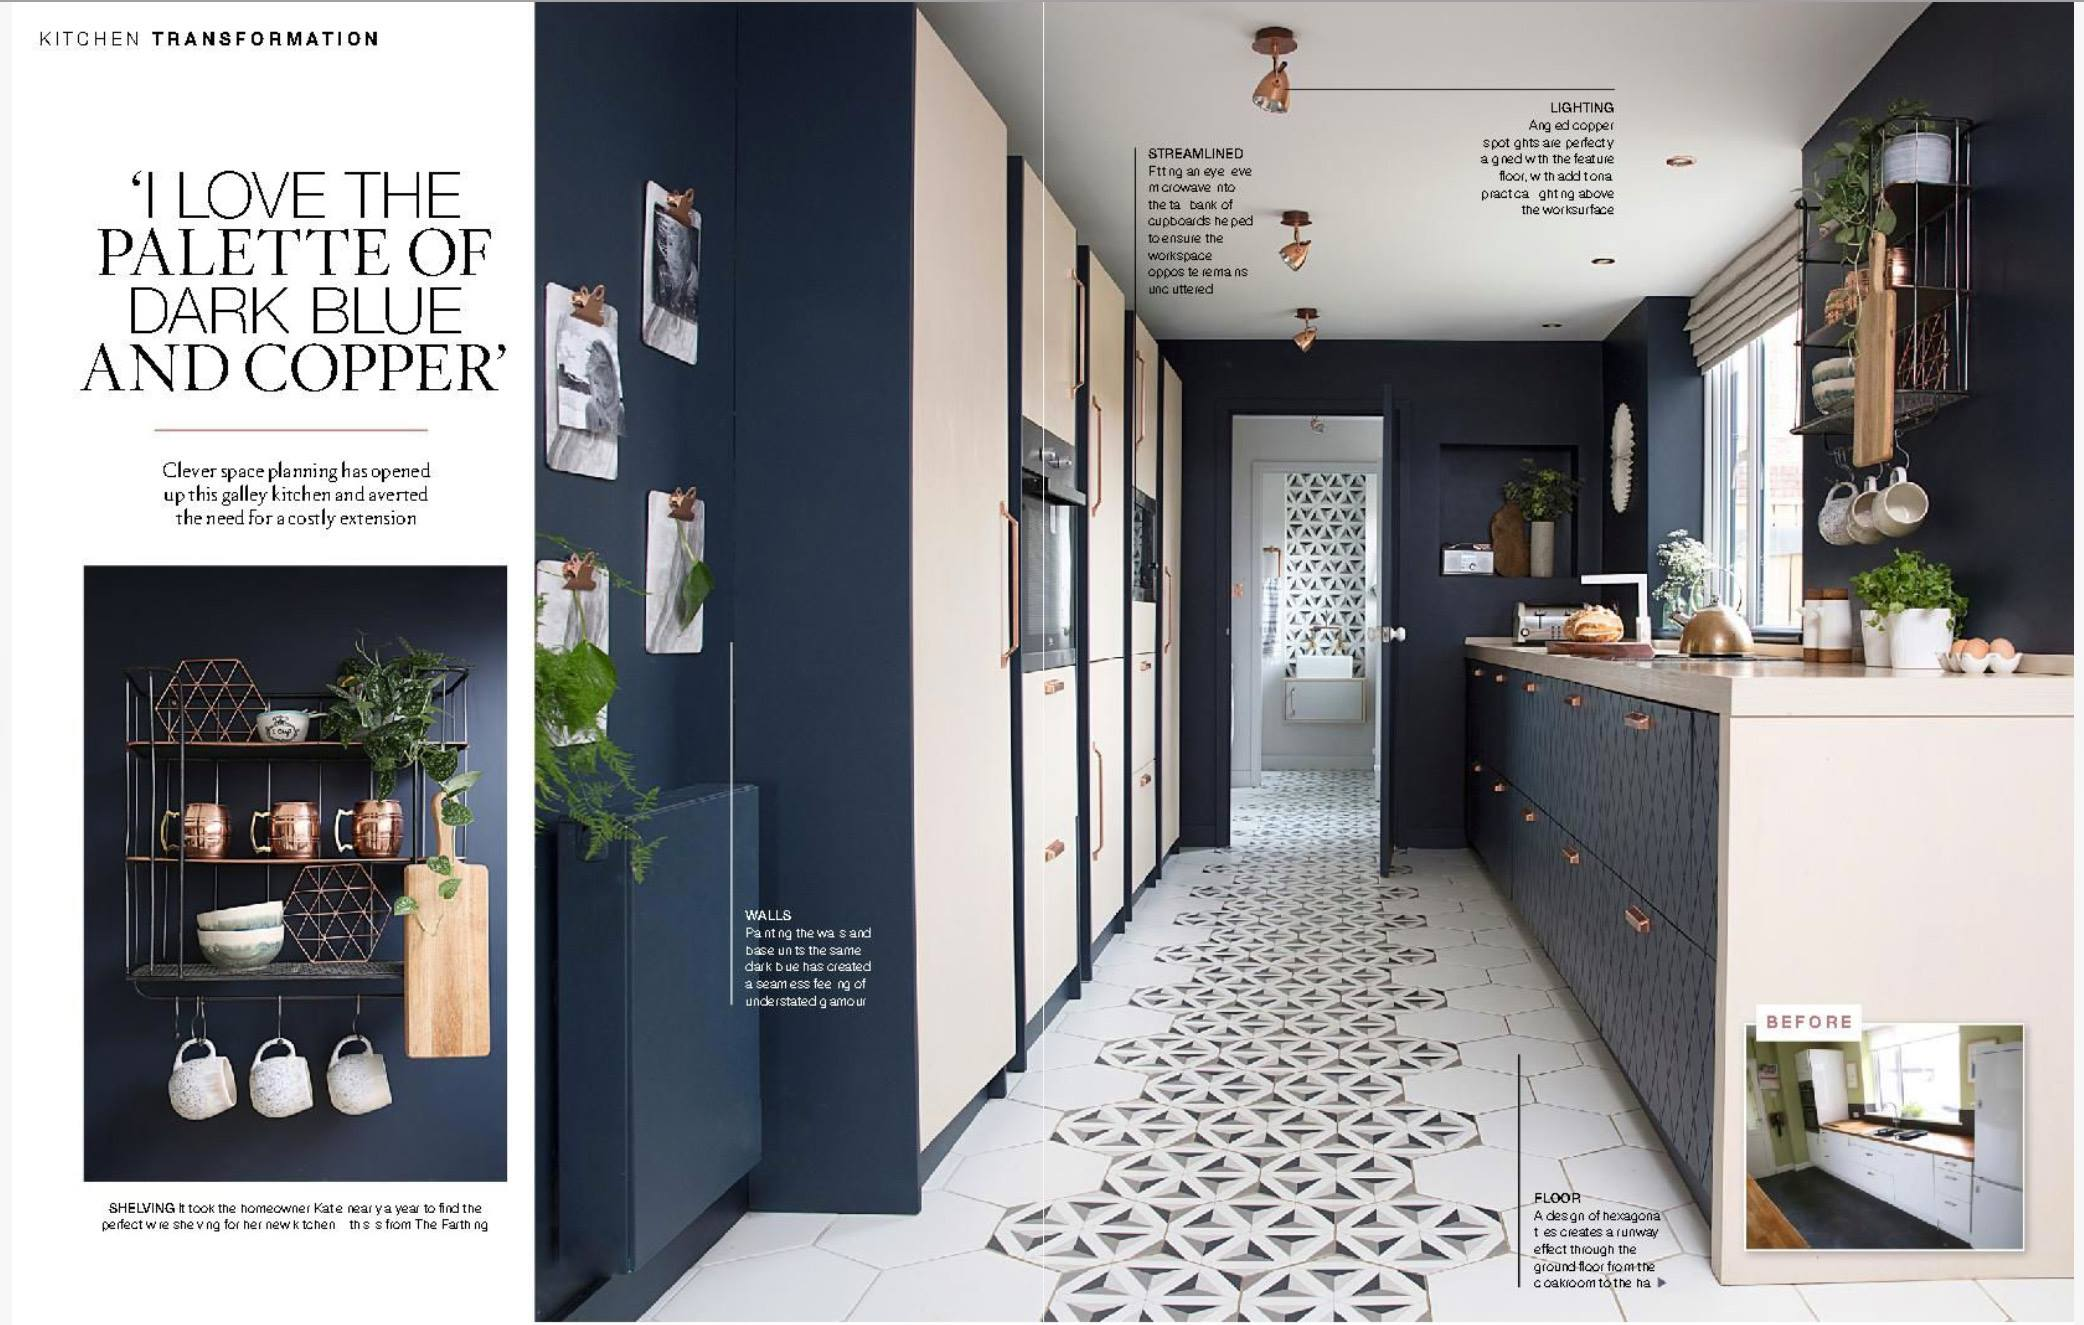 Beautiful Homes in the North magazine spread